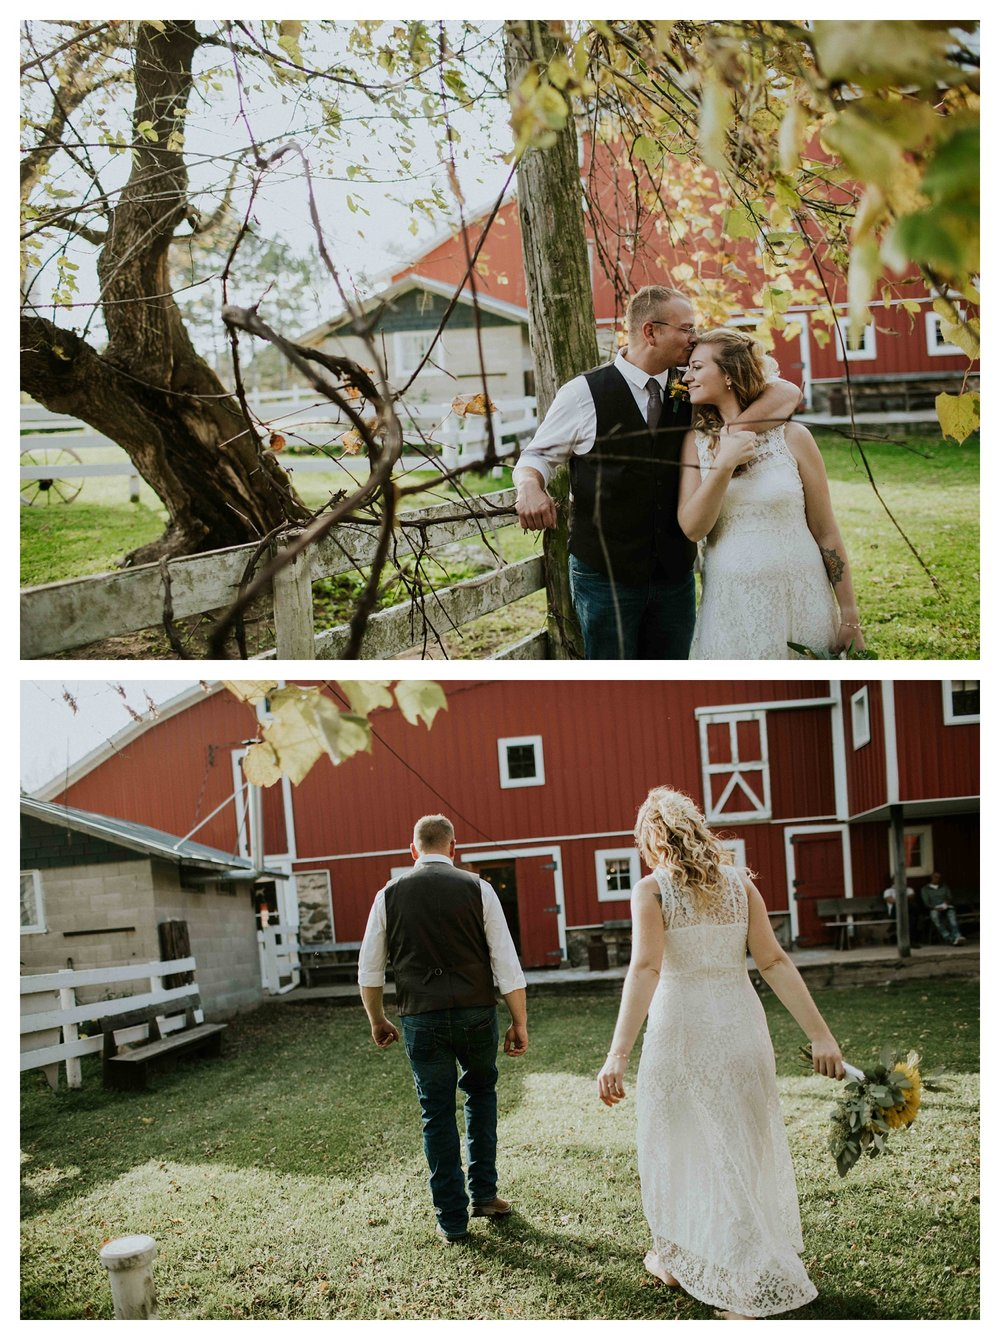 clauson barn wedding photographer chloe ann photography madison wisconsin photographer_0015.jpg